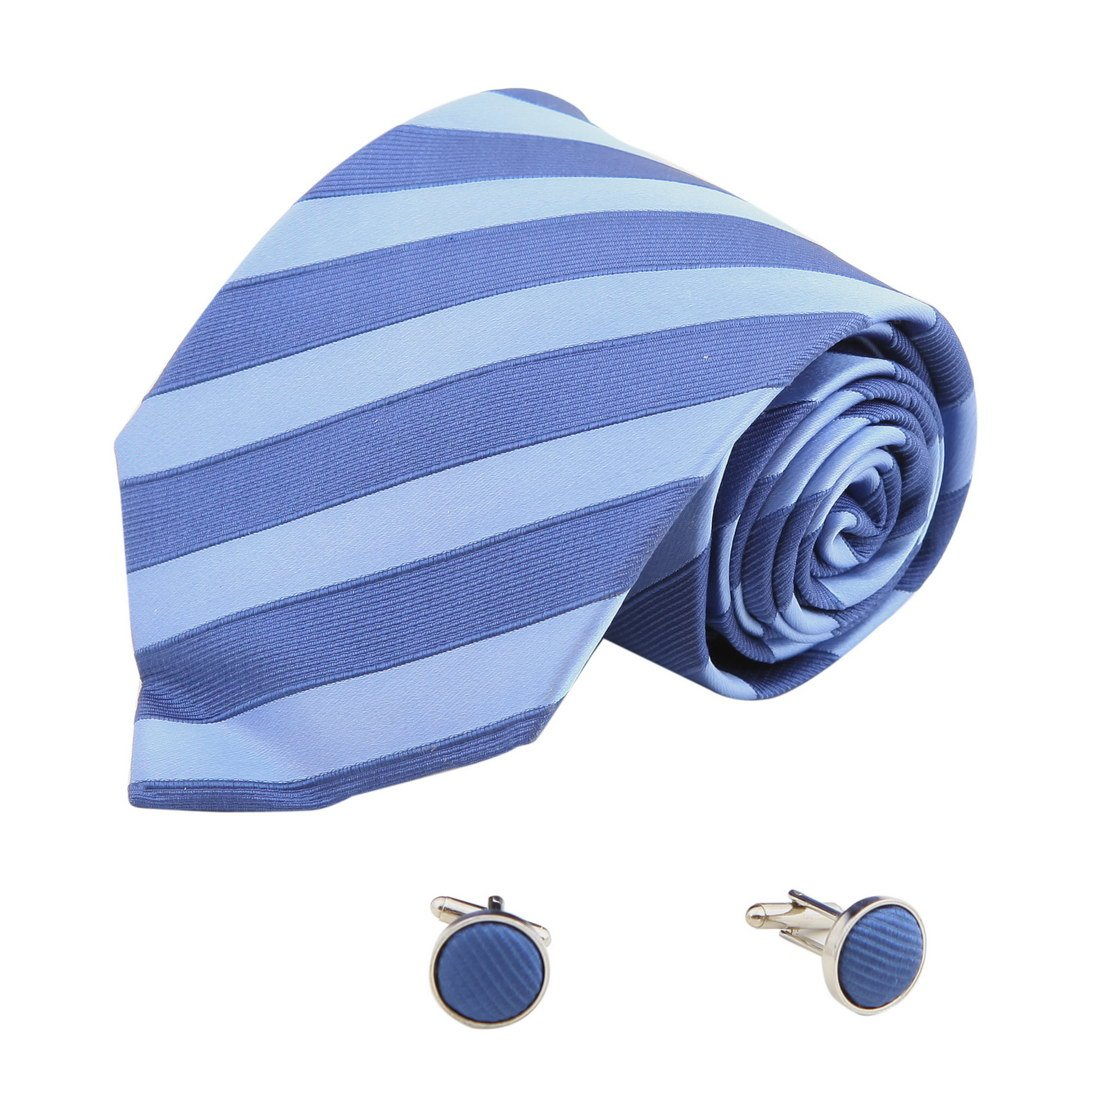 8117 Navy Striped The Future Silk Ties Cufflinks Present Box Set By Y&G